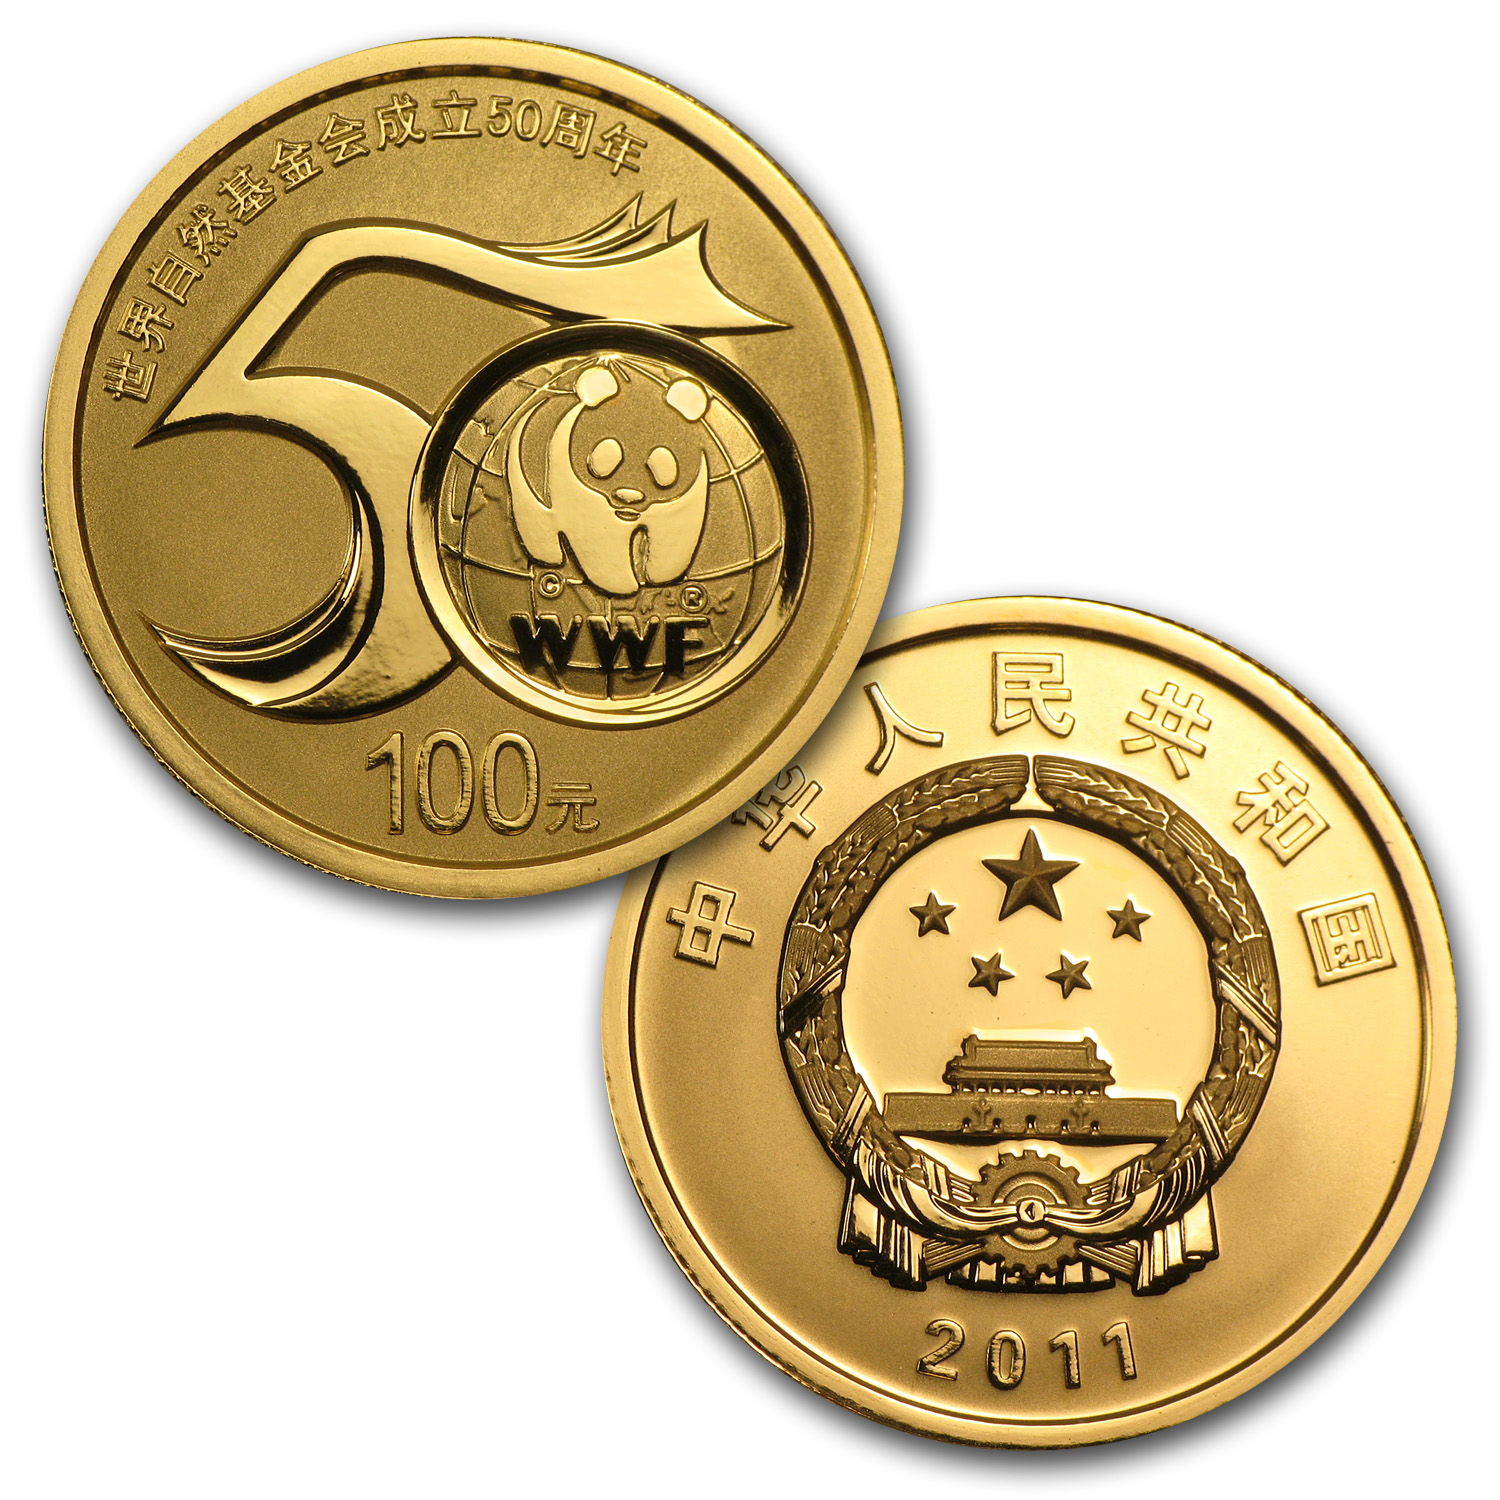 China 2011 2-Coin 1/4 oz Gold & 1 oz Silver 50th Anniv of WWF Set